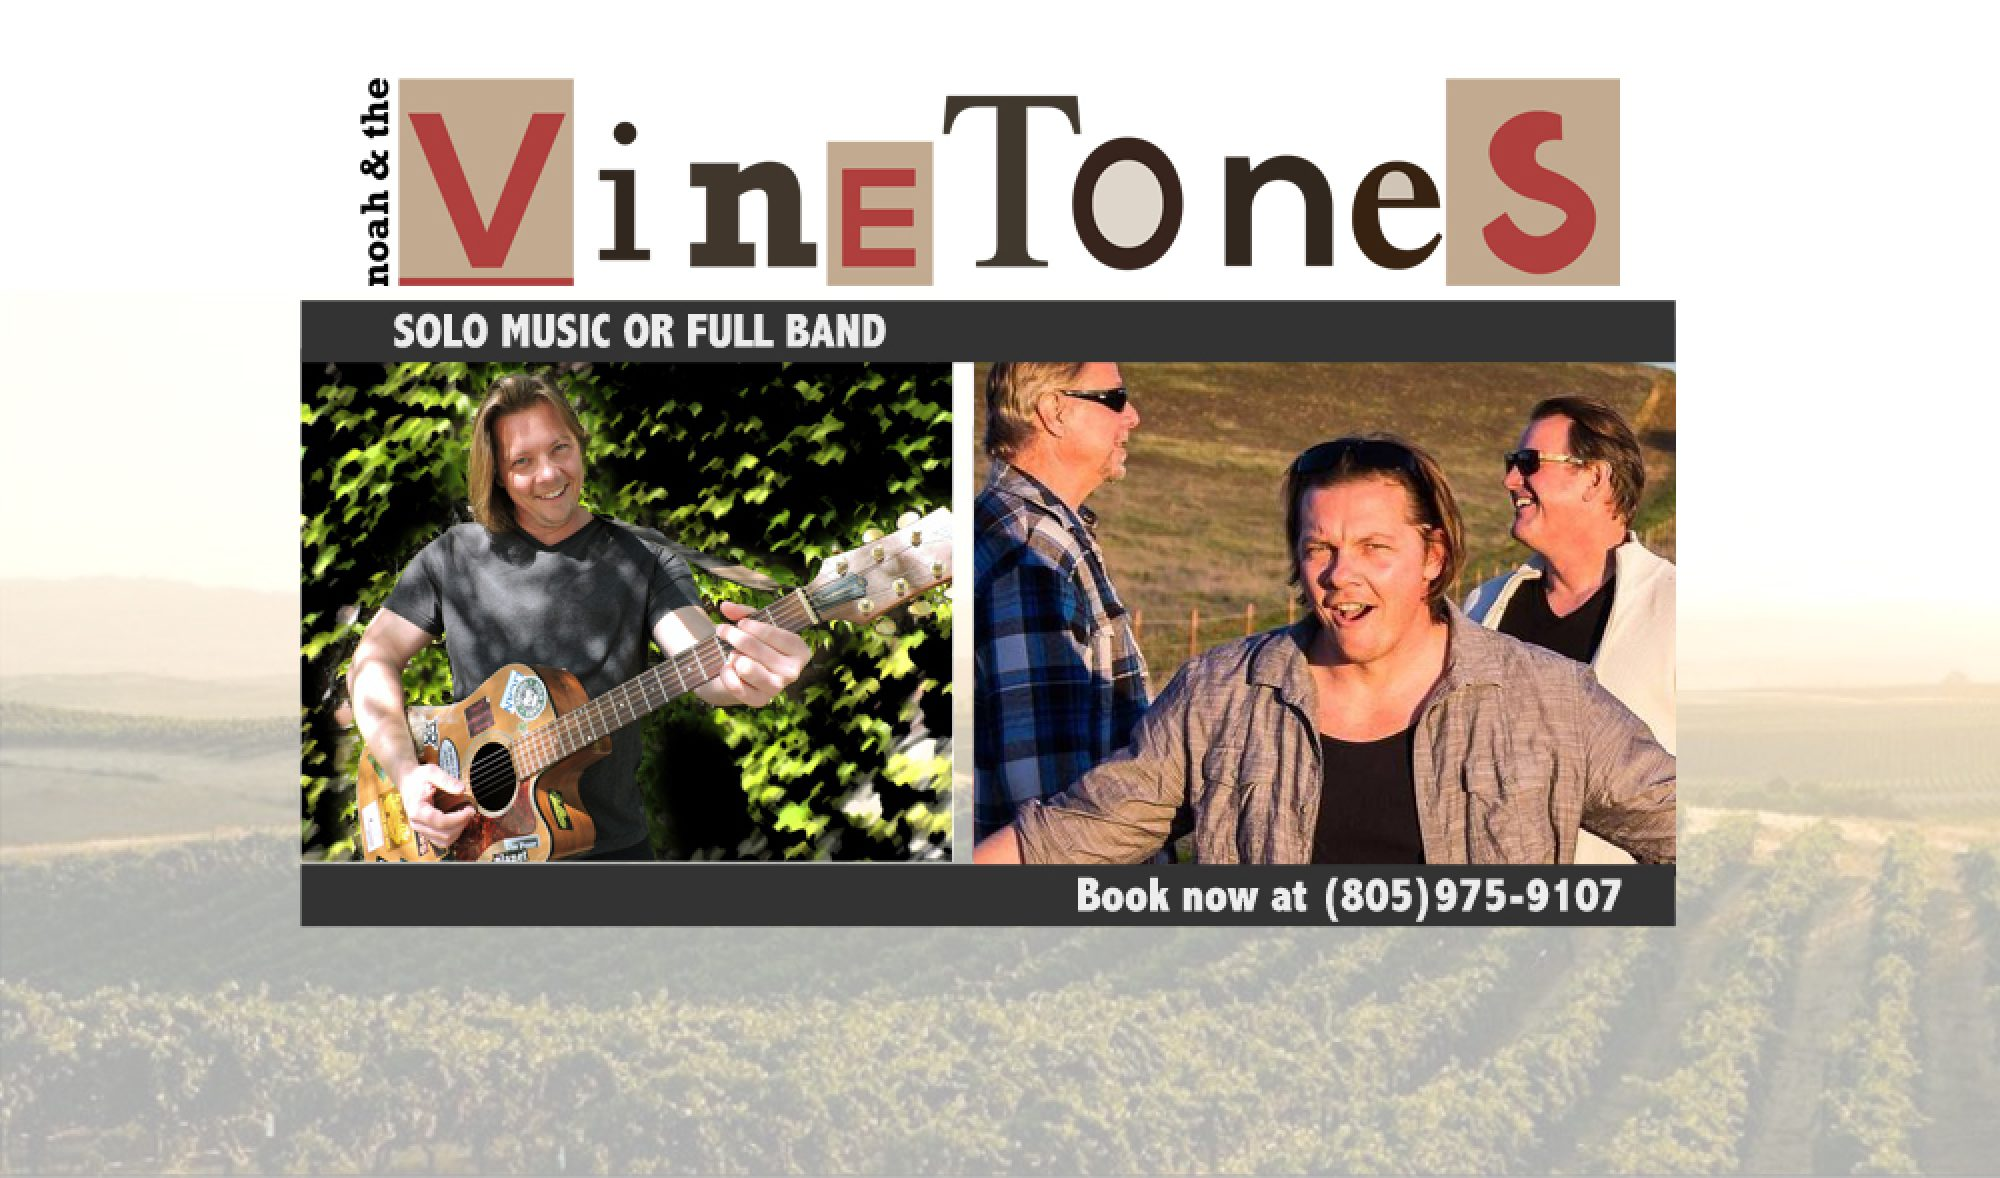 san luis obispo county band and music | noah and the vinetones